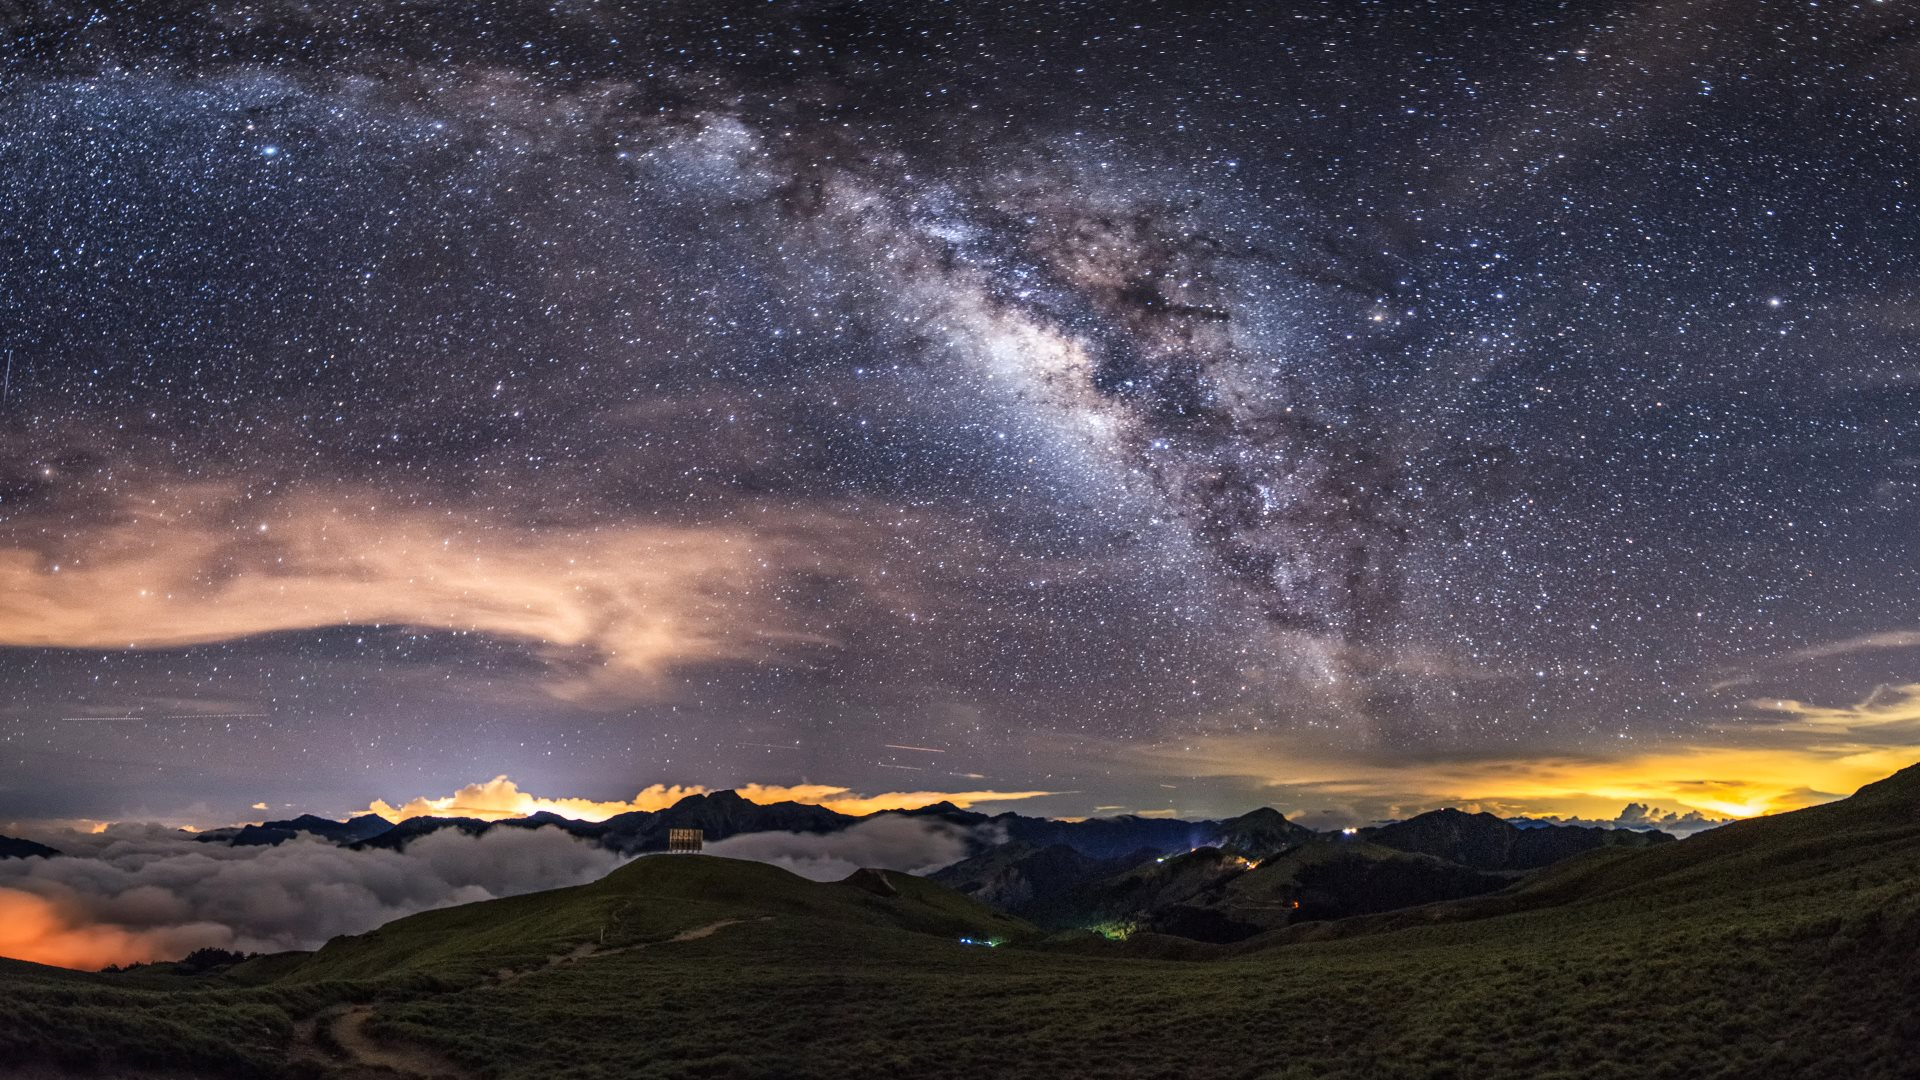 milky-way-on-the-night-sky_hd.jpg